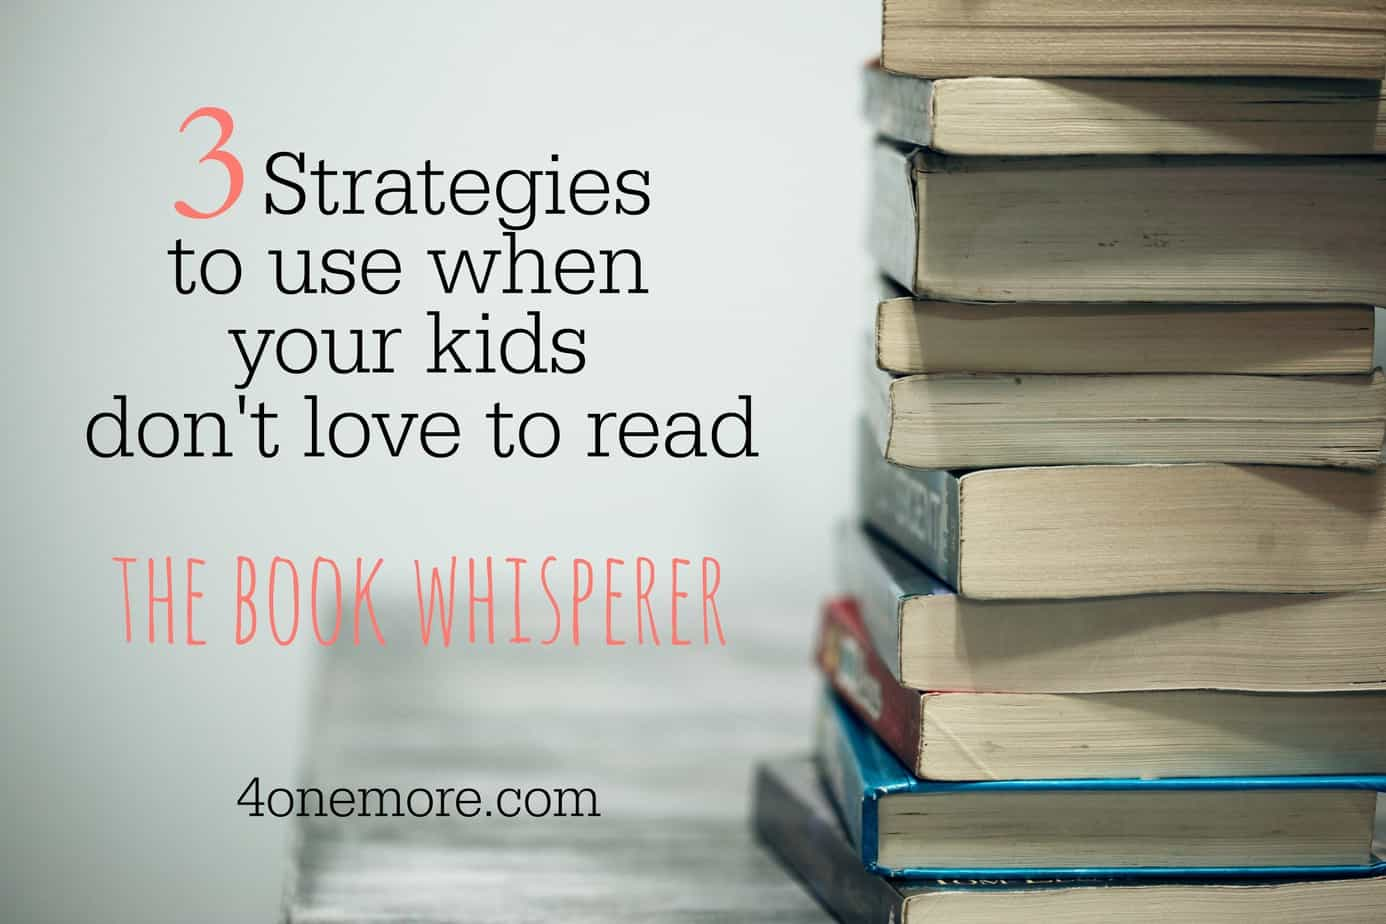 What do you do when your kids don't love to read? The Book